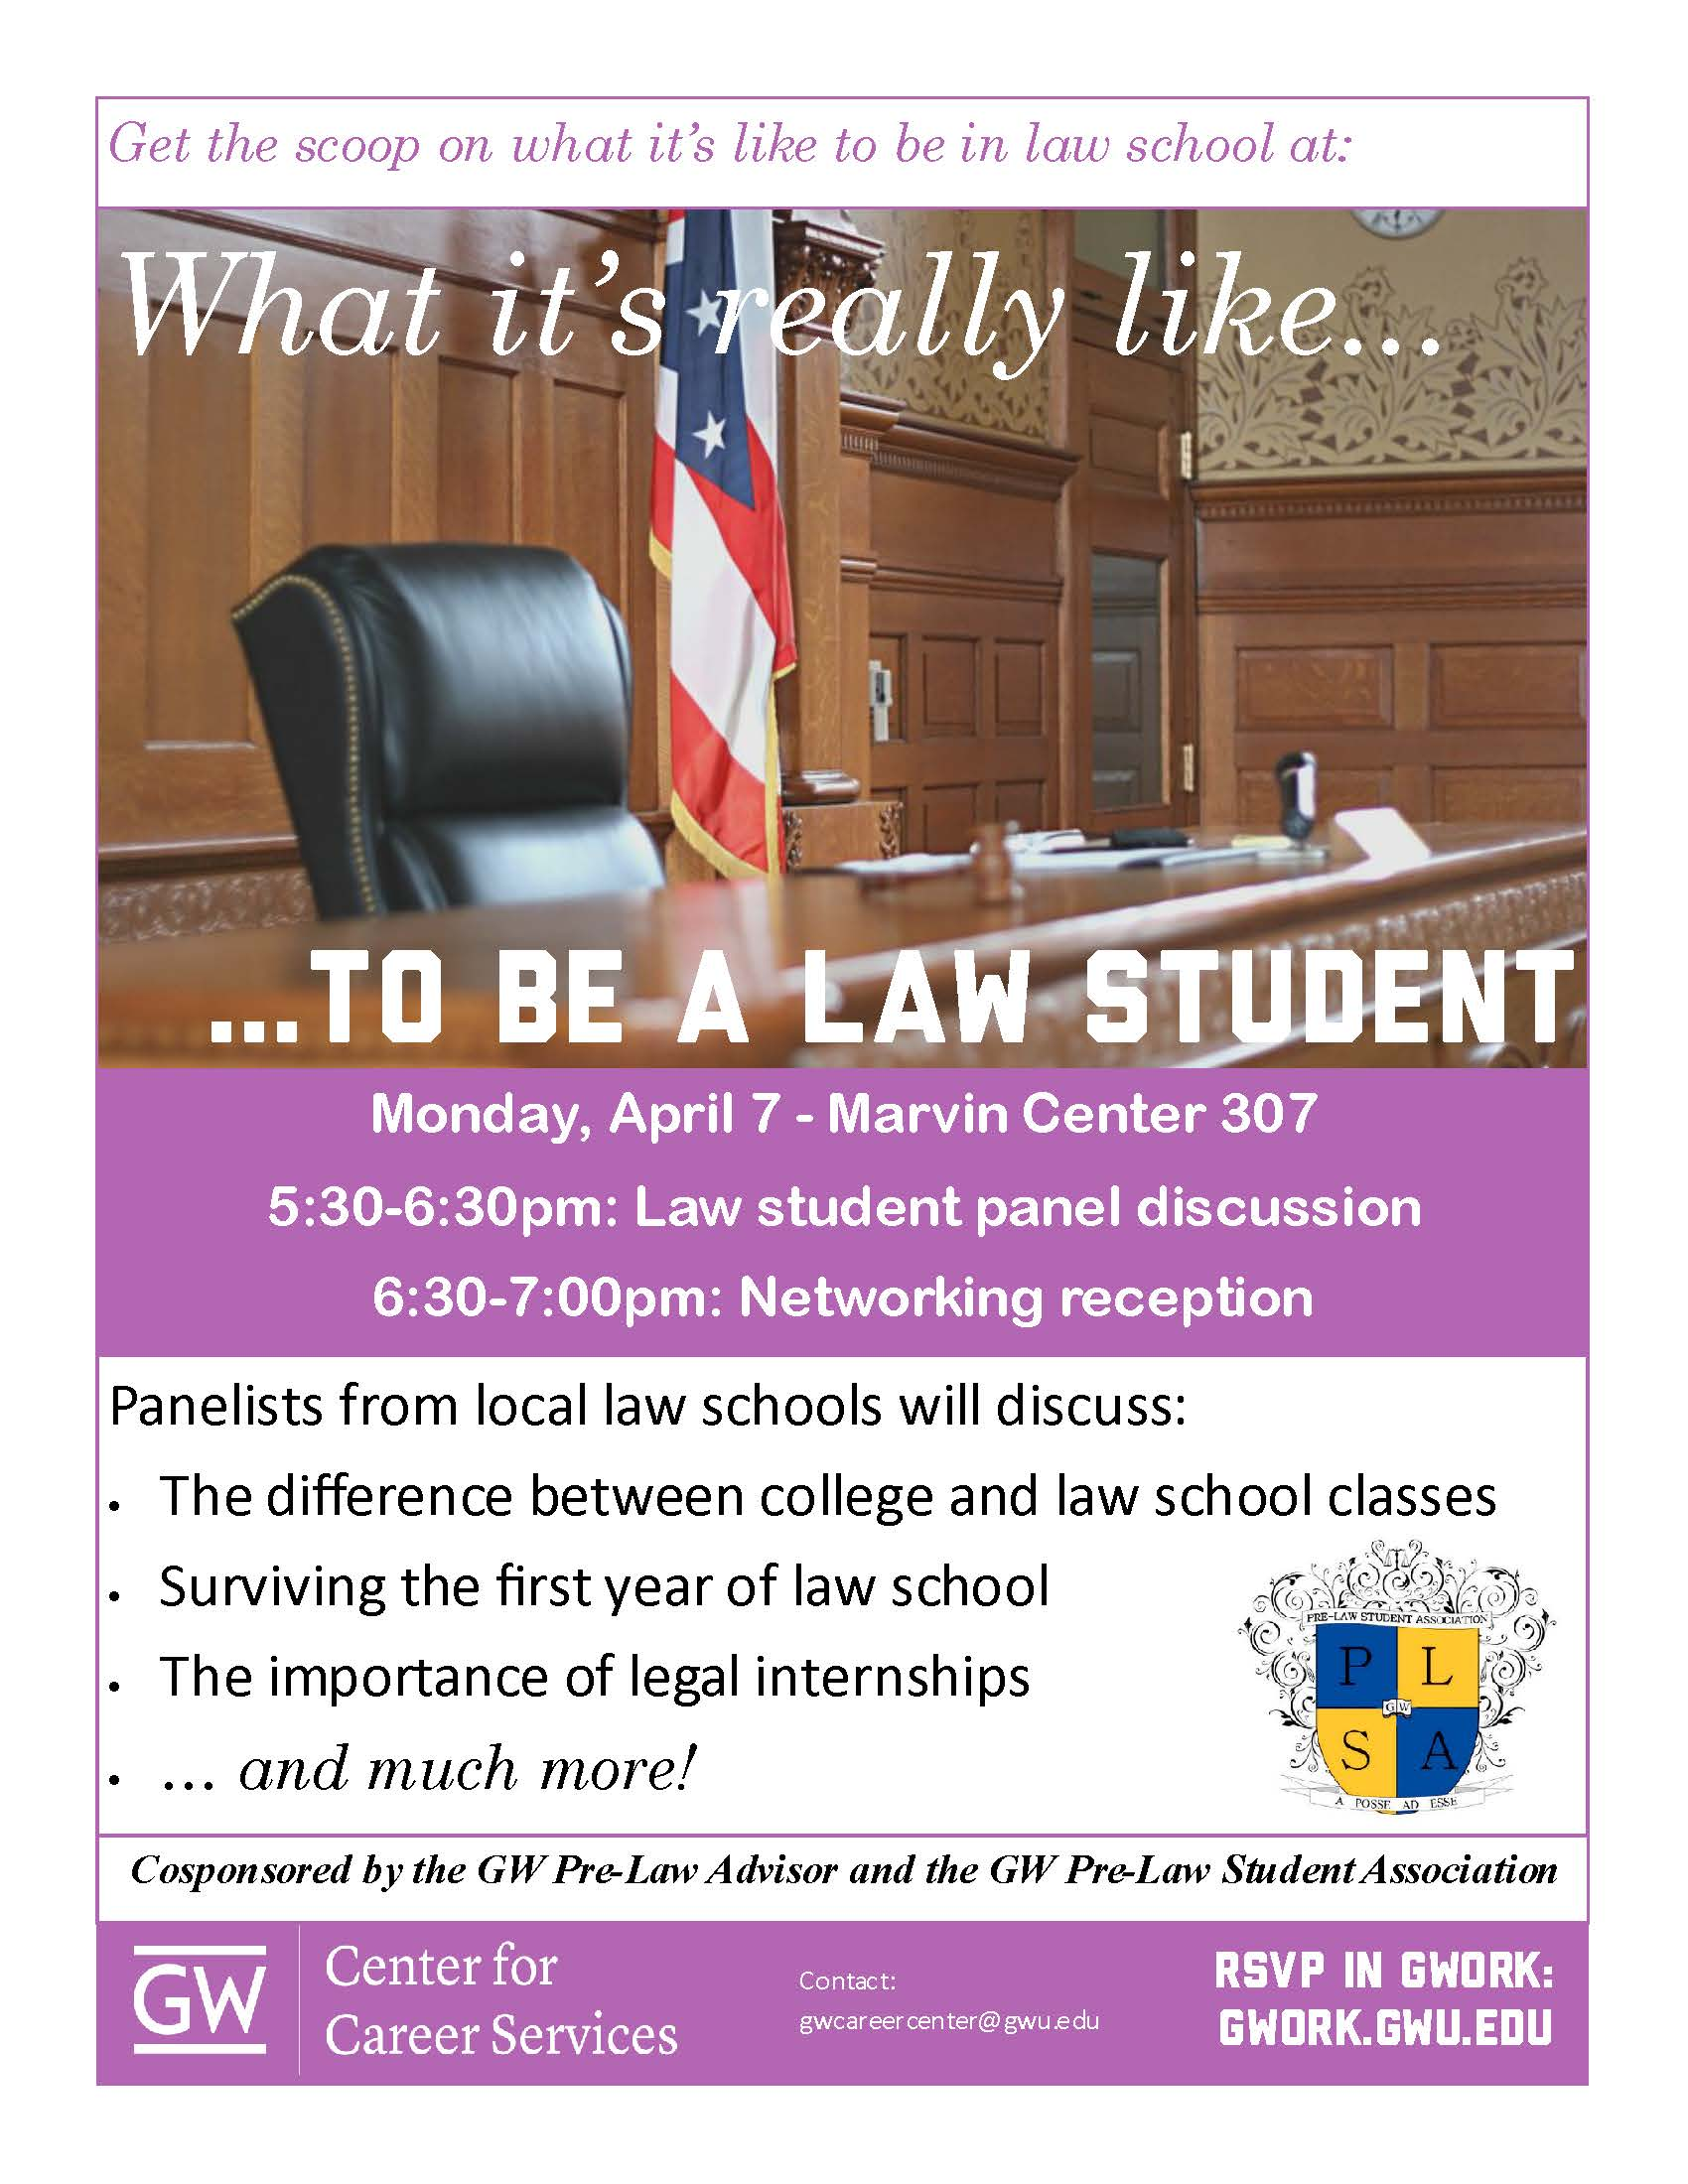 gwork dan s advising updates law school workshop flyer